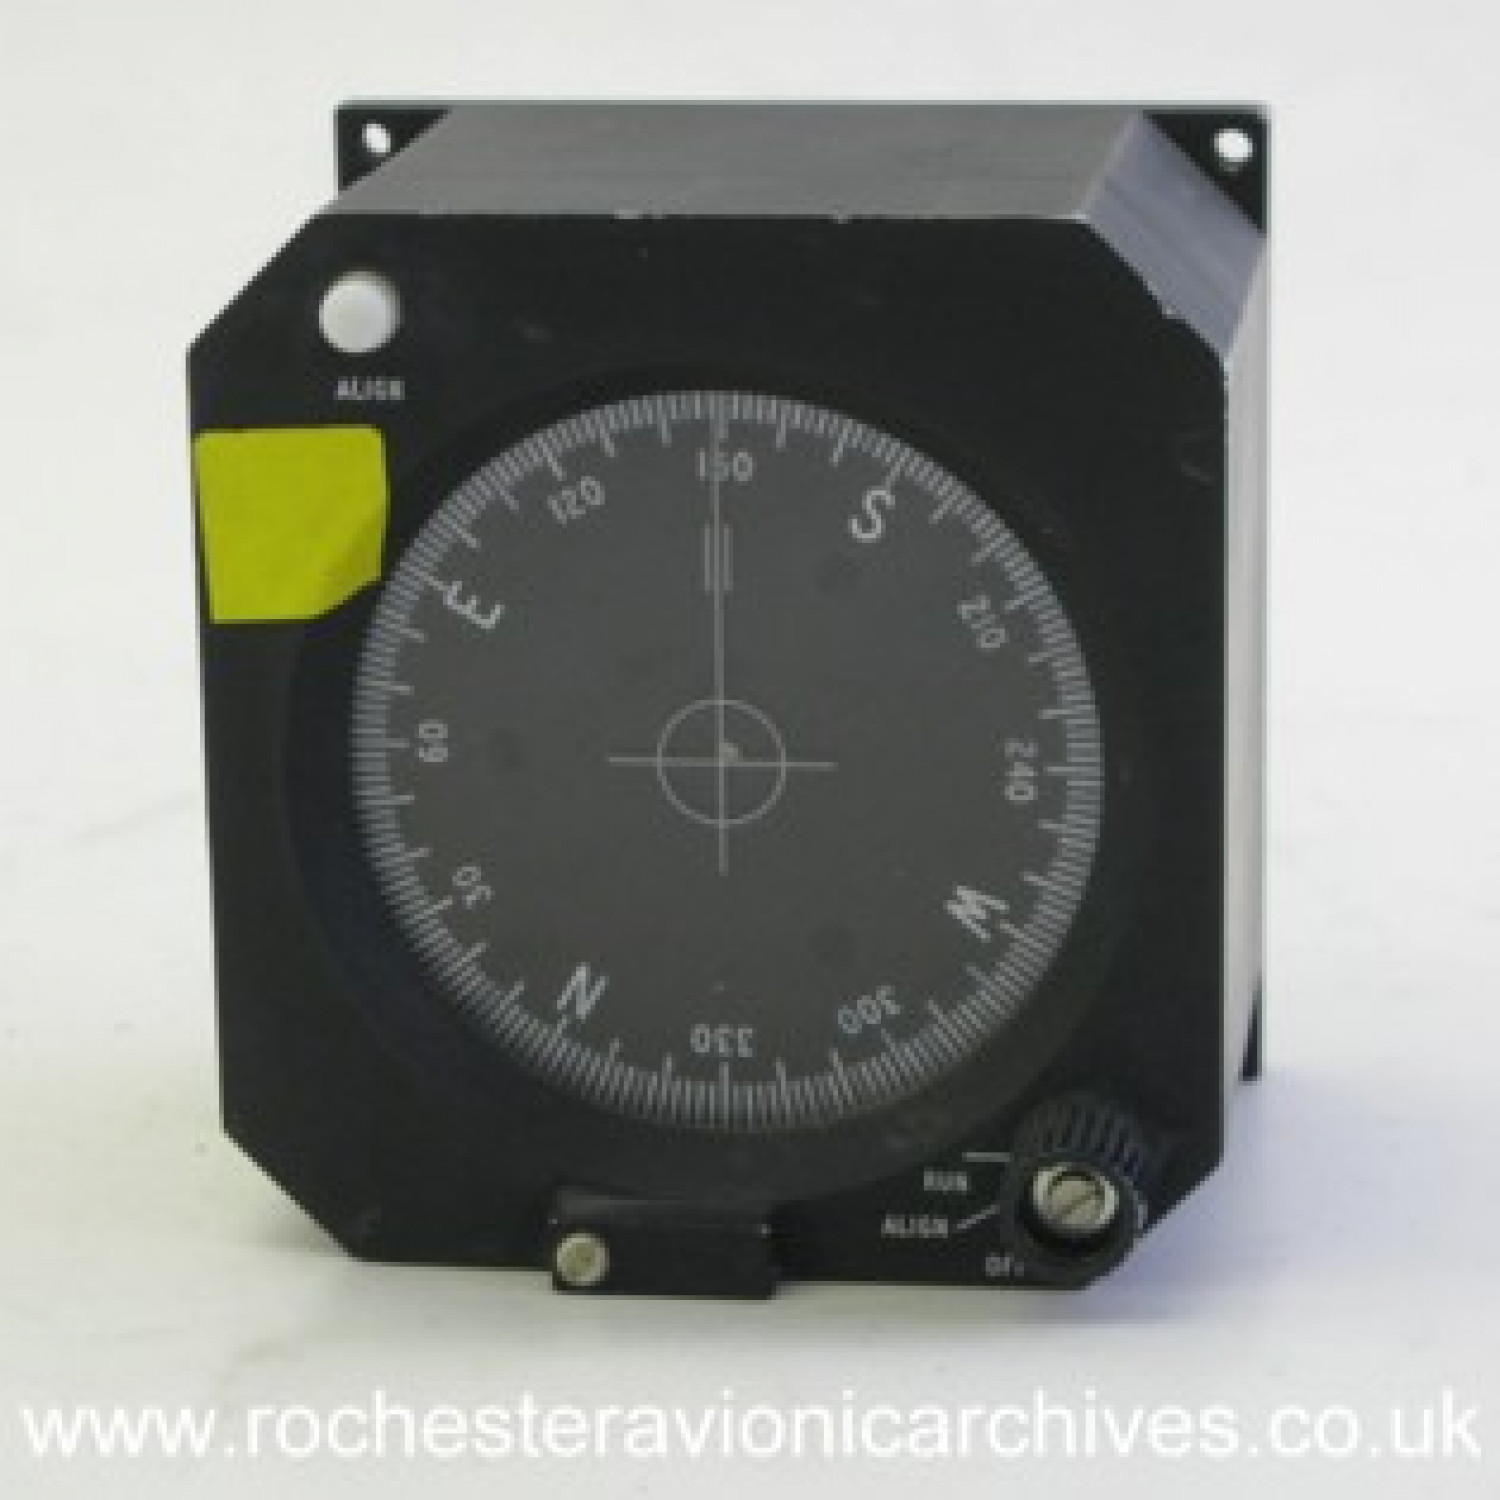 Remote (Compass Bearing) Display Unit